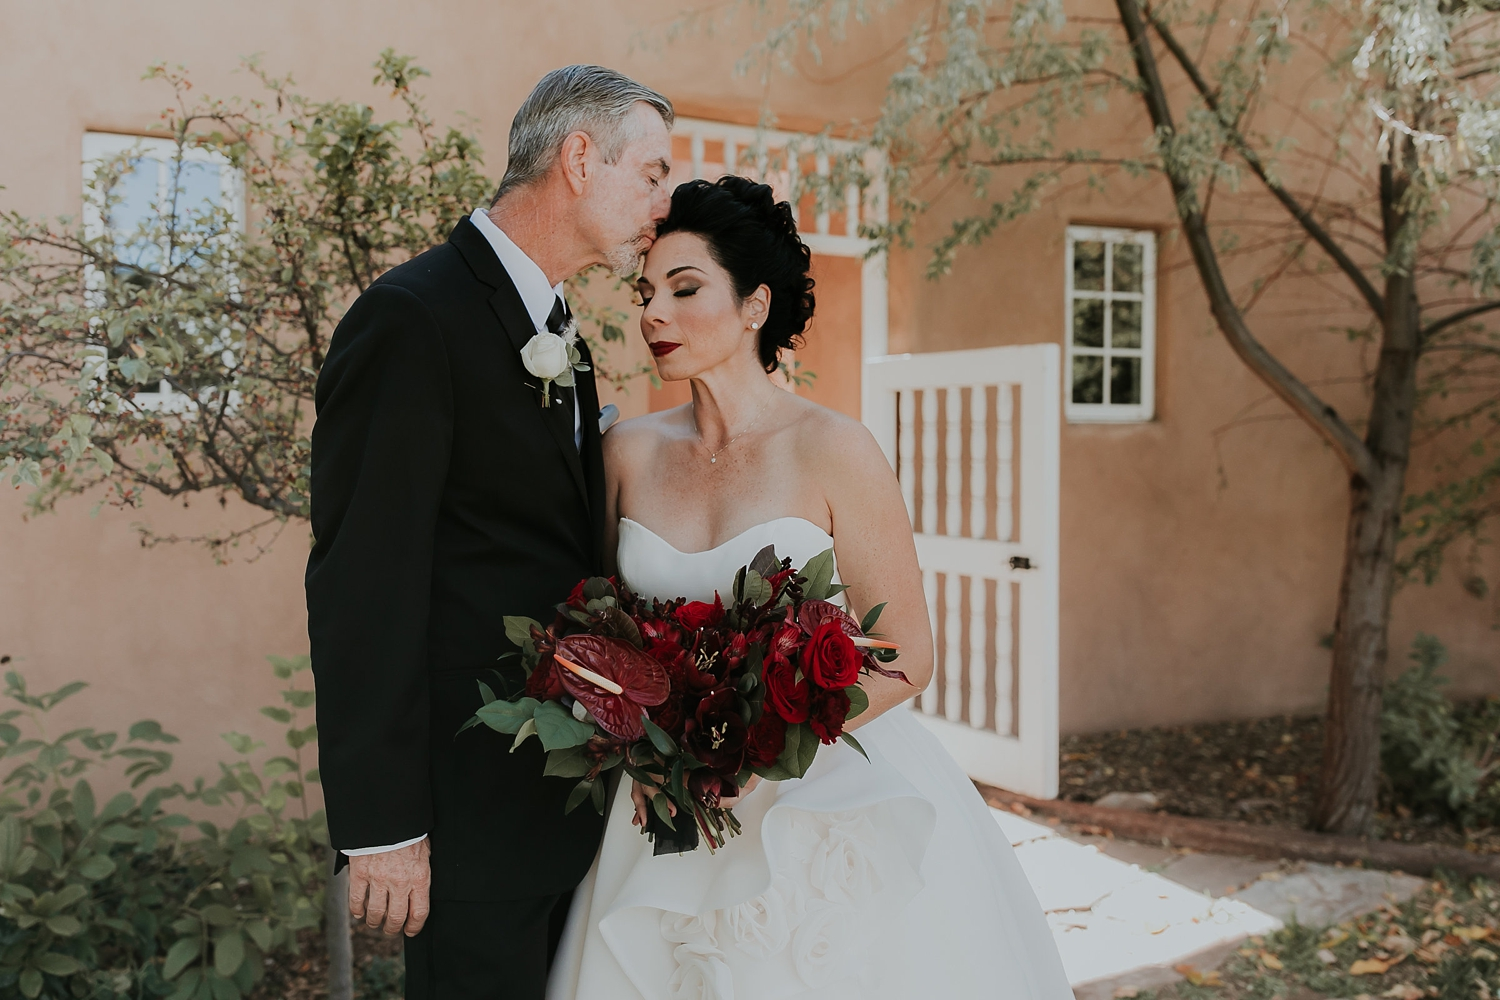 Alicia+lucia+photography+-+albuquerque+wedding+photographer+-+santa+fe+wedding+photography+-+new+mexico+wedding+photographer+-+los+poblanos+wedding+-+los+poblanos+fall+wedding+-+los+poblanos+october+wedding_0025.jpg